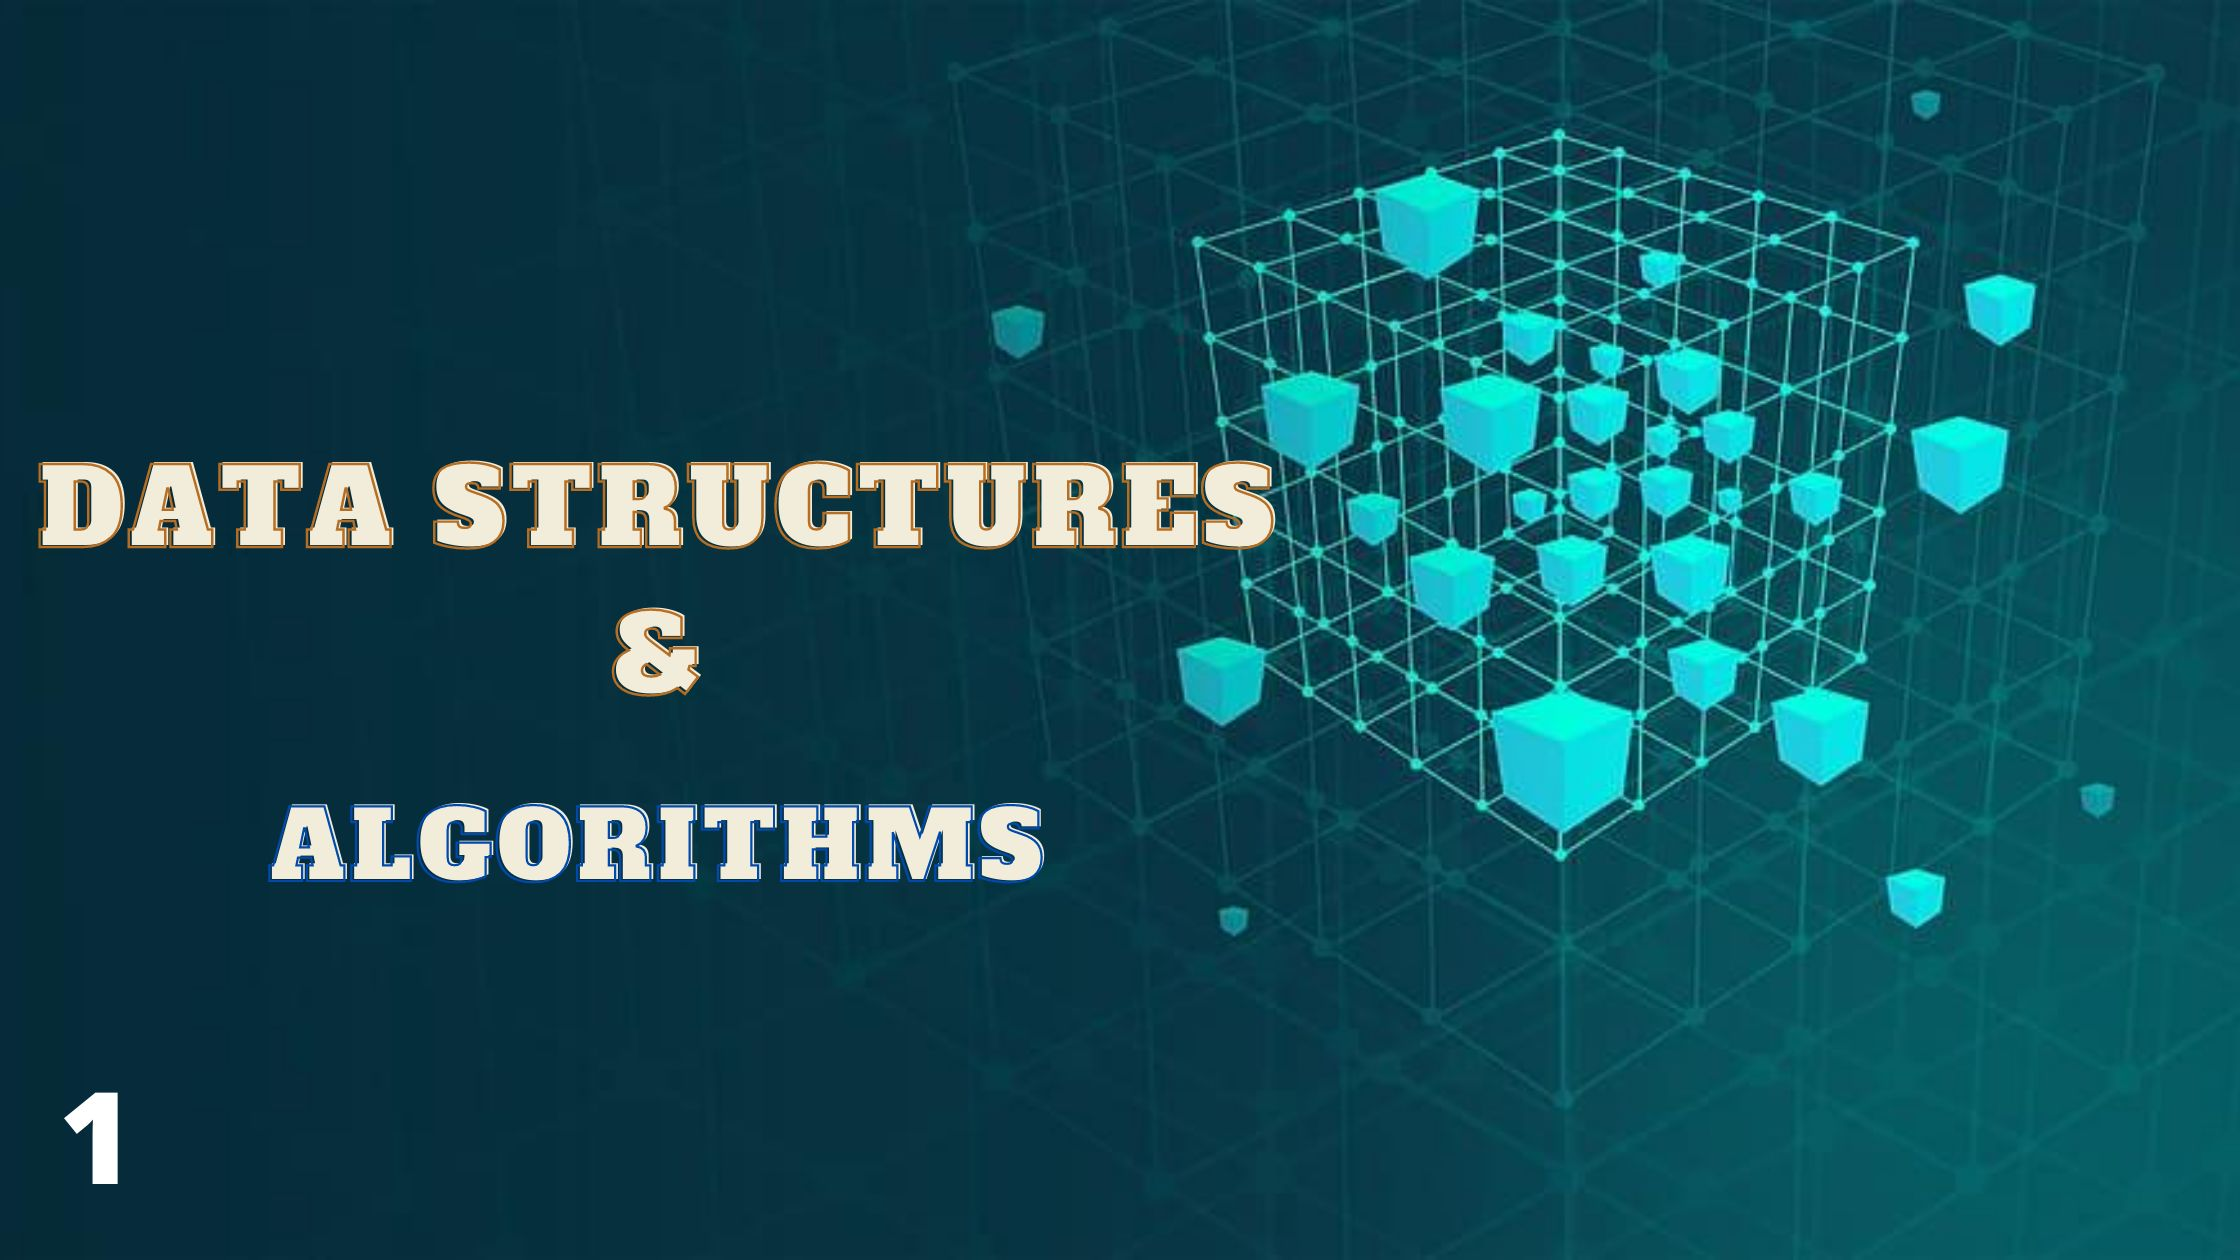 A n00b's Guide To Data Structures and Algorithms